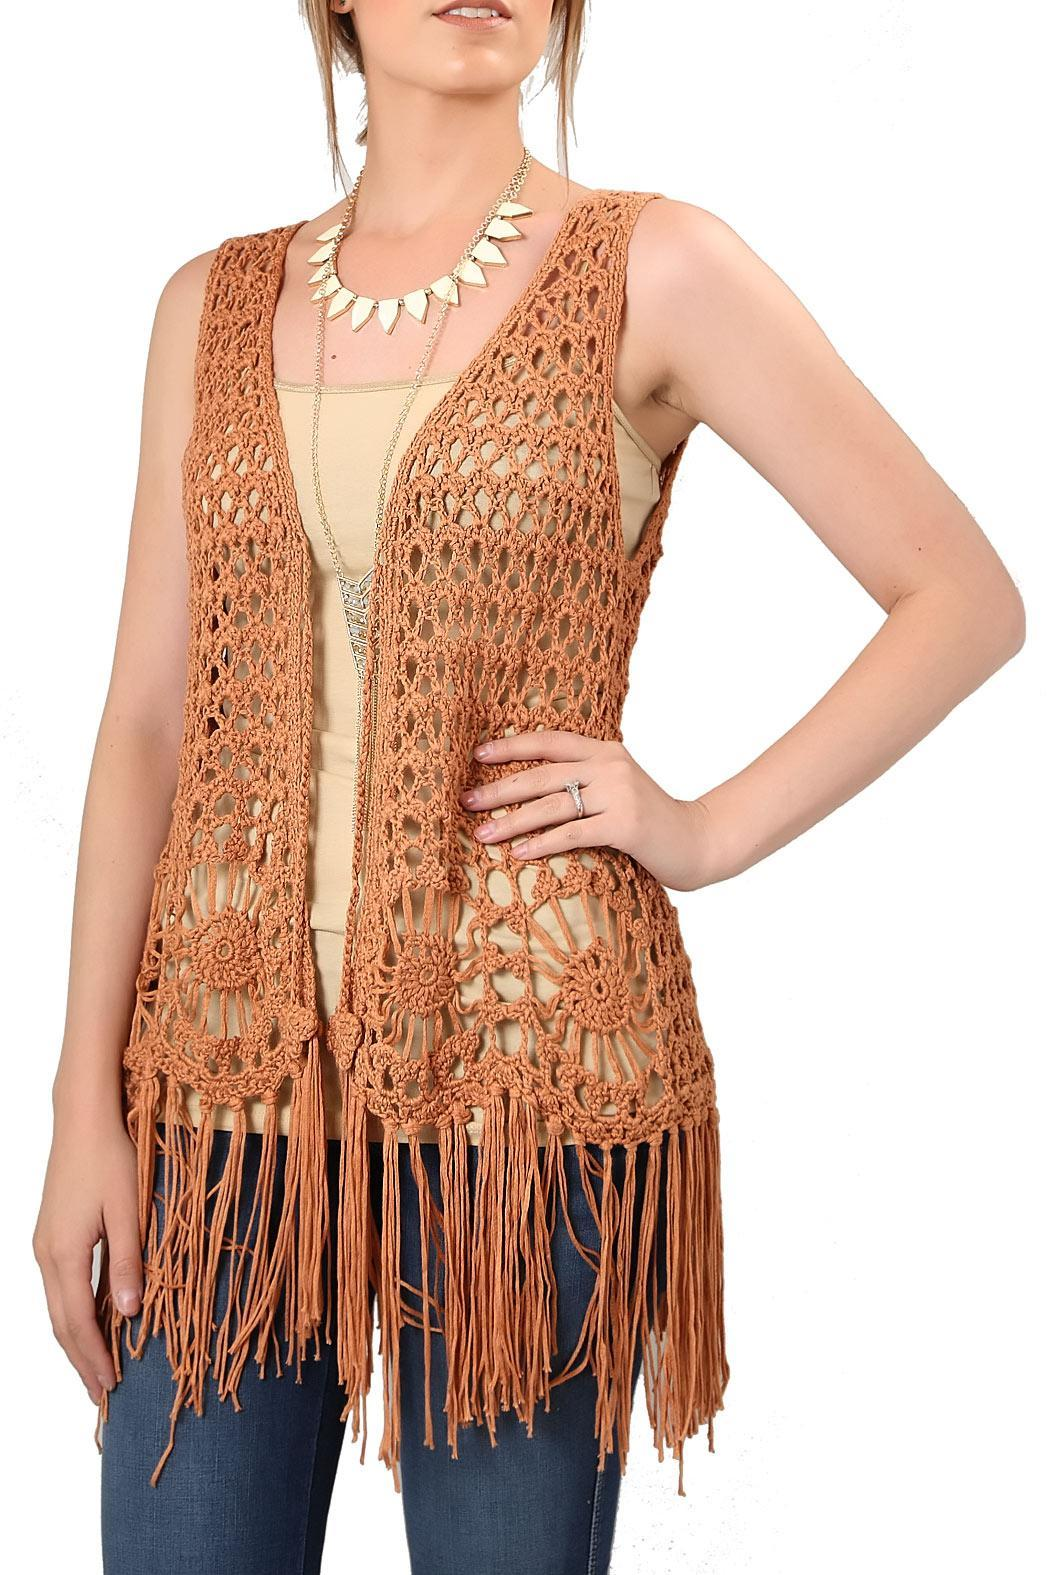 The Closet Crochet Fringe Vest From Montana Shoptiques